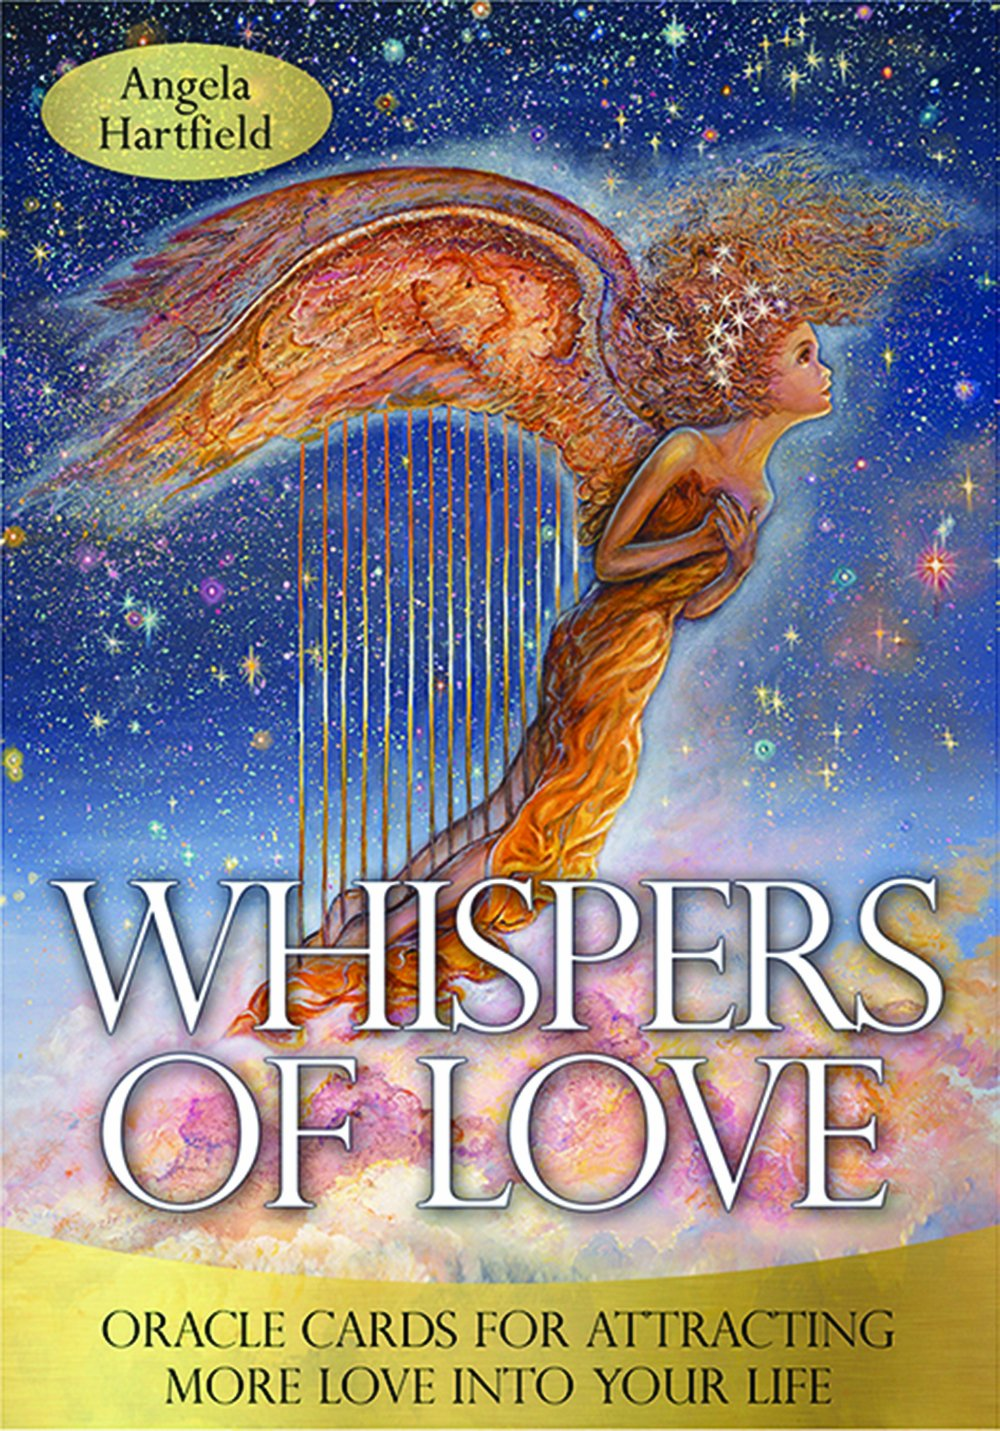 Whispers Of Love Oracle Cards by Angel Hartfield